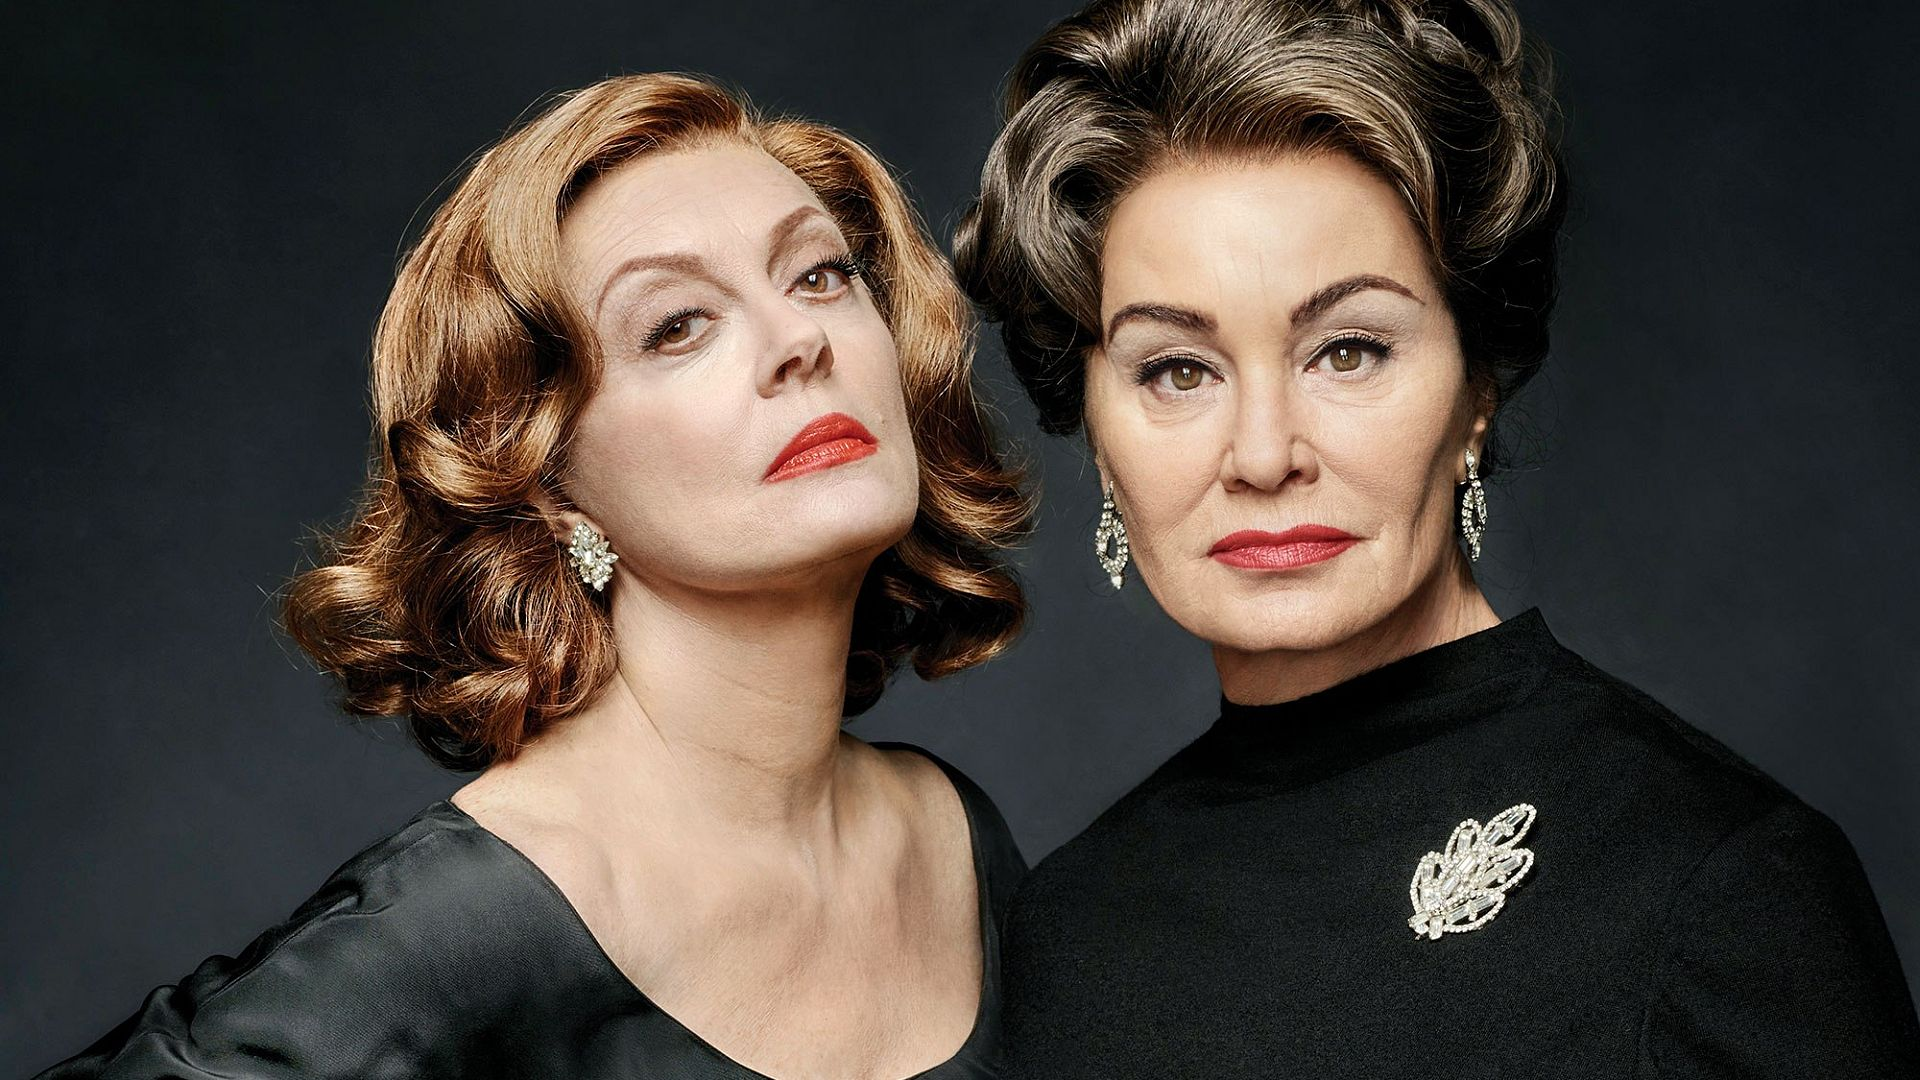 Inside The Screen Get Intimate With Bette and Joan Feud! 3